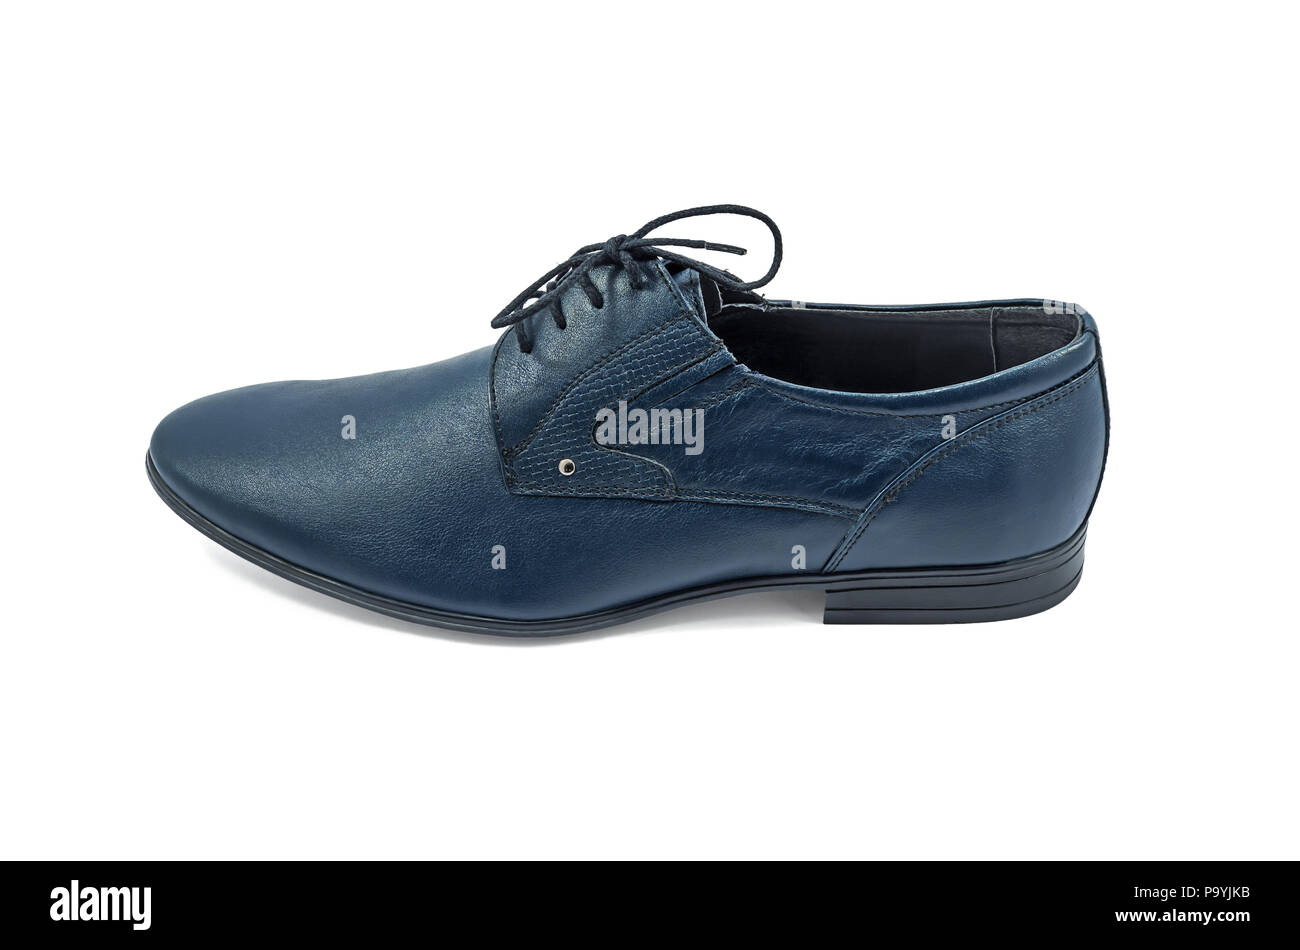 Left men's fashionable shoes dark blue color, classic design on a white background isolated - Stock Image